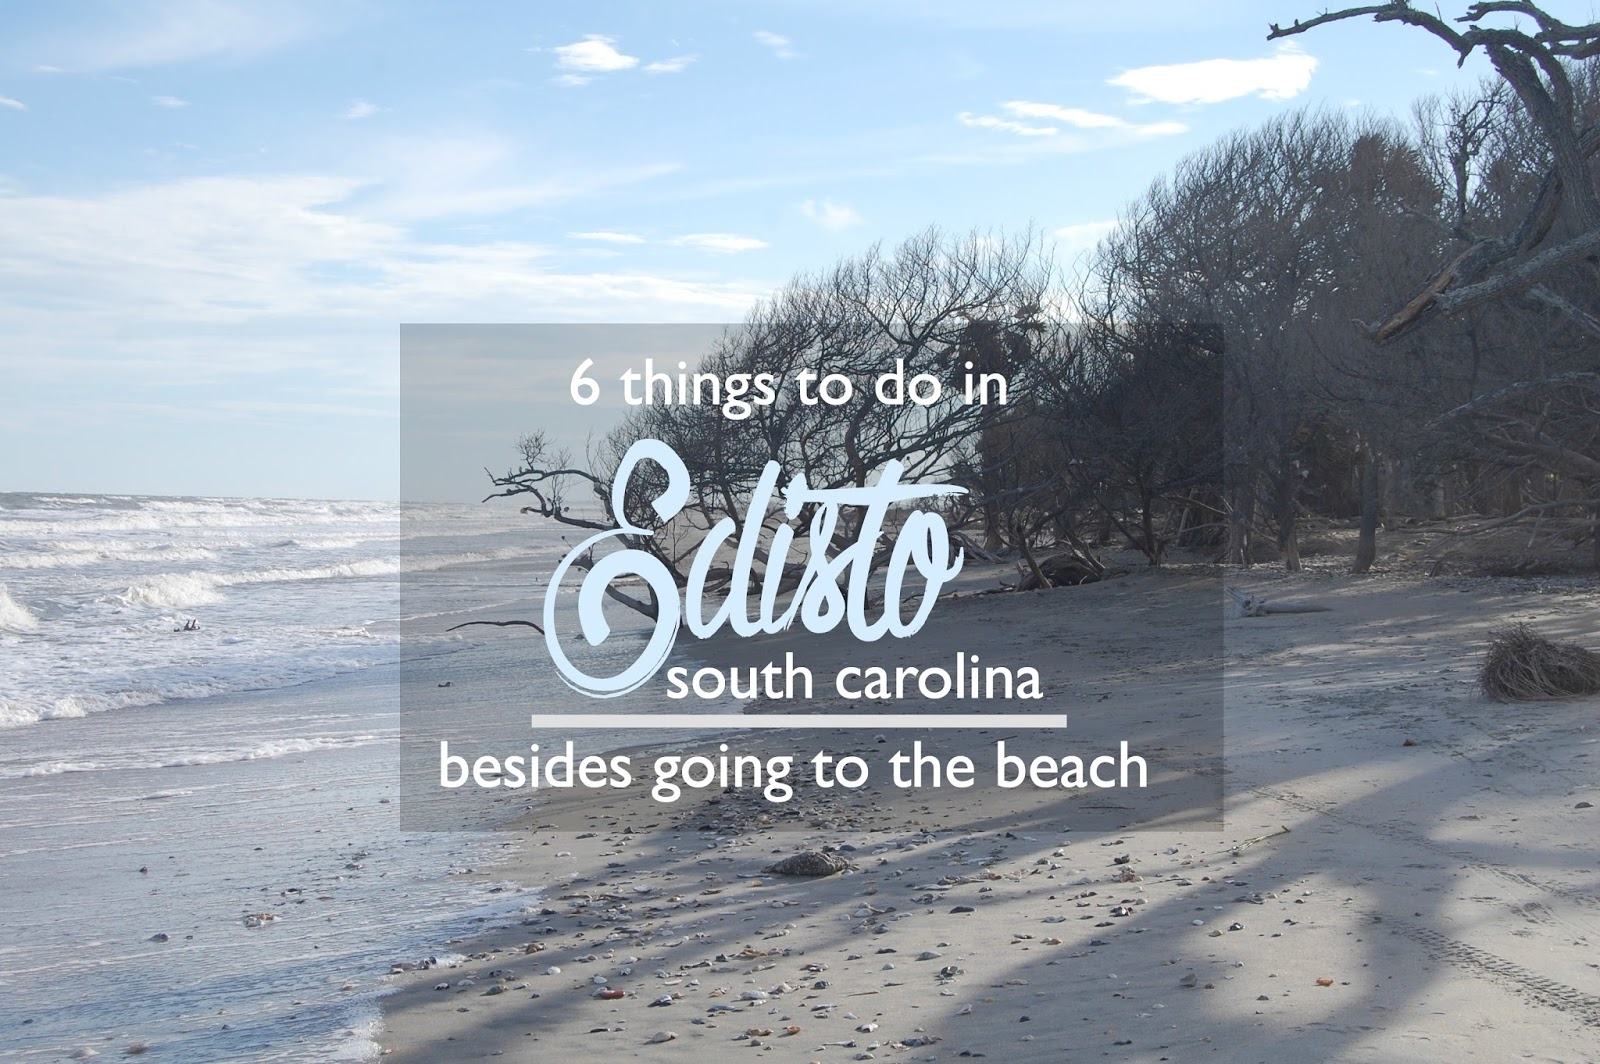 What To Do On Edisto Island South Carolina Besides Going The Beach